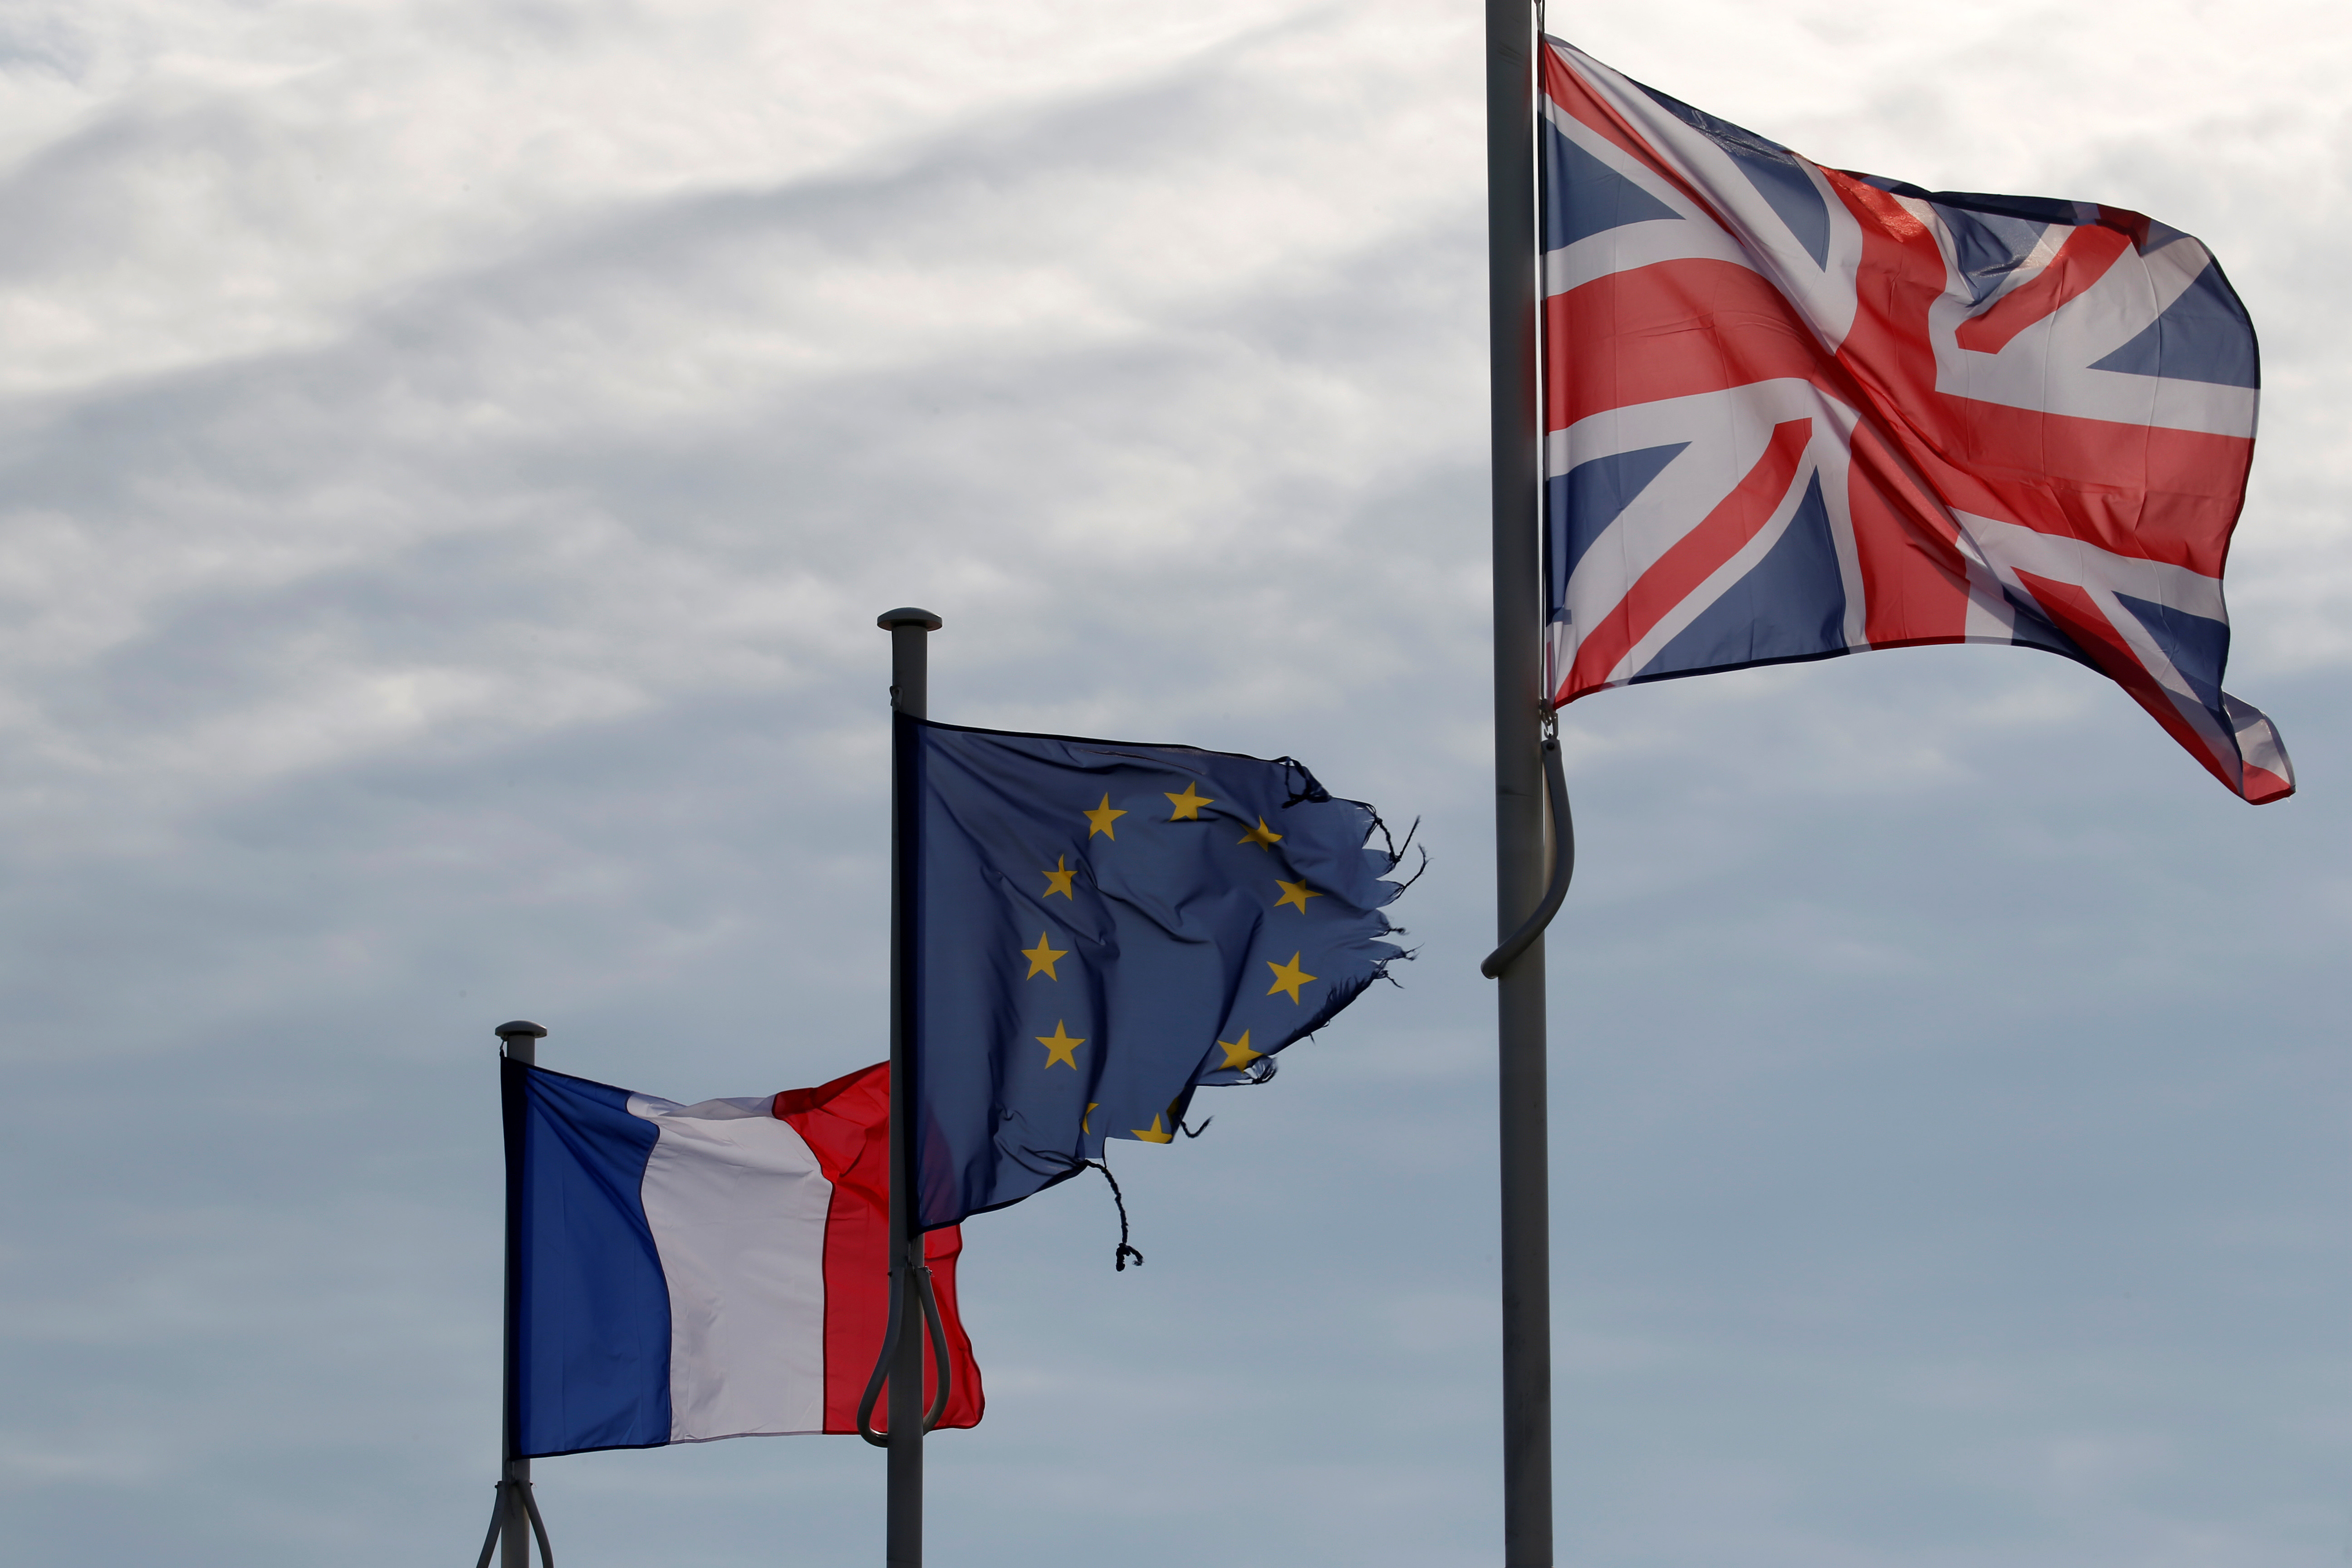 The French, British Union Jack and European flags are seen in the harbour of Calais, France, October 30, 2019. Picture taken October 30, 2019.